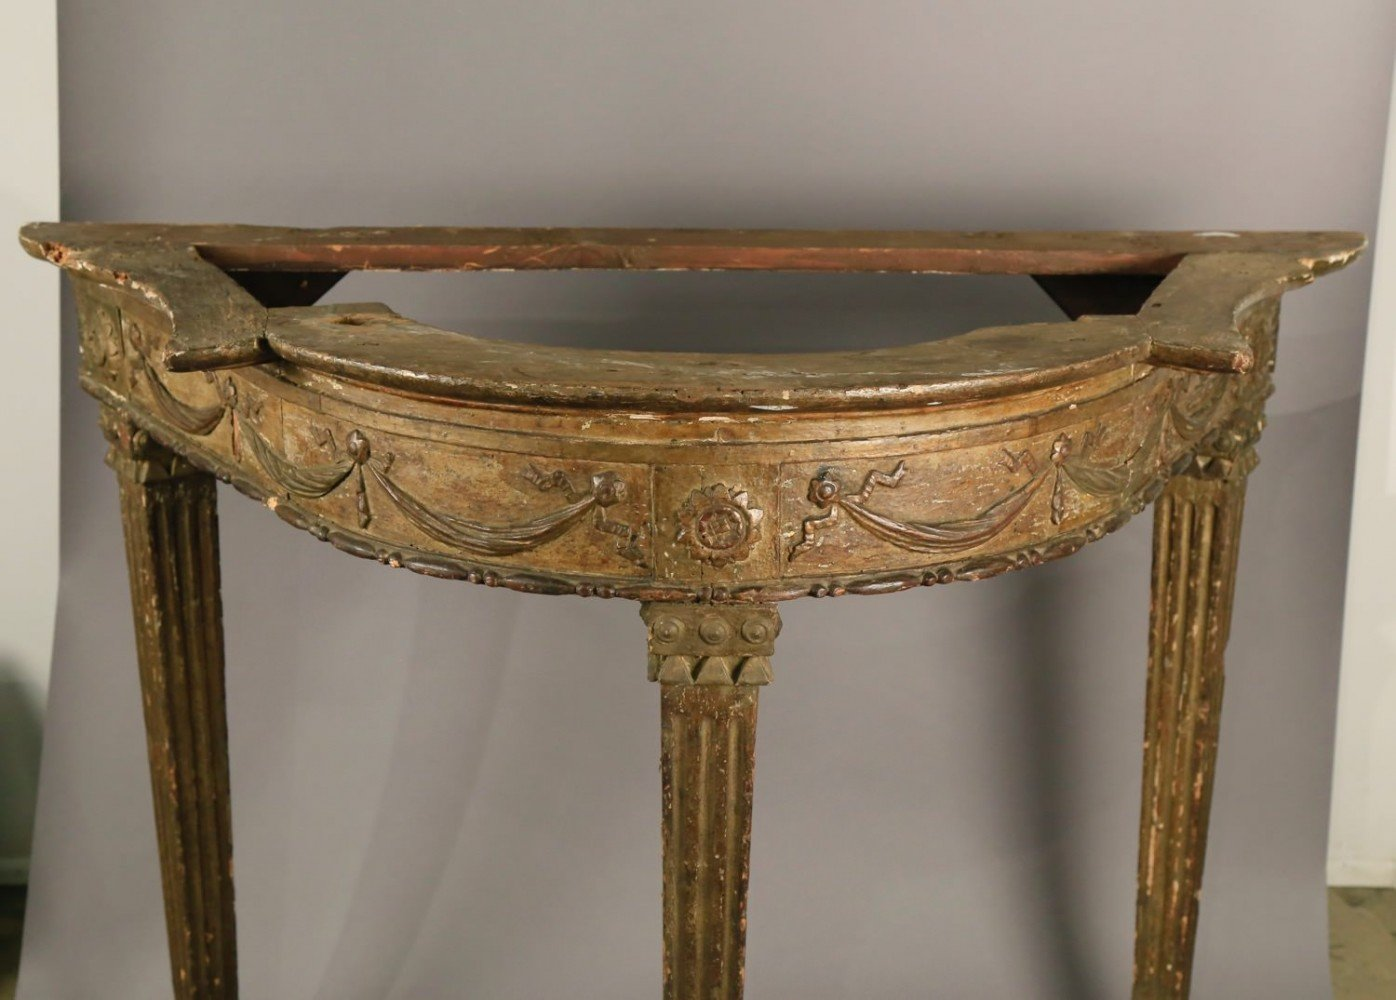 An Italian Neoclassical Console Table, 18thc.